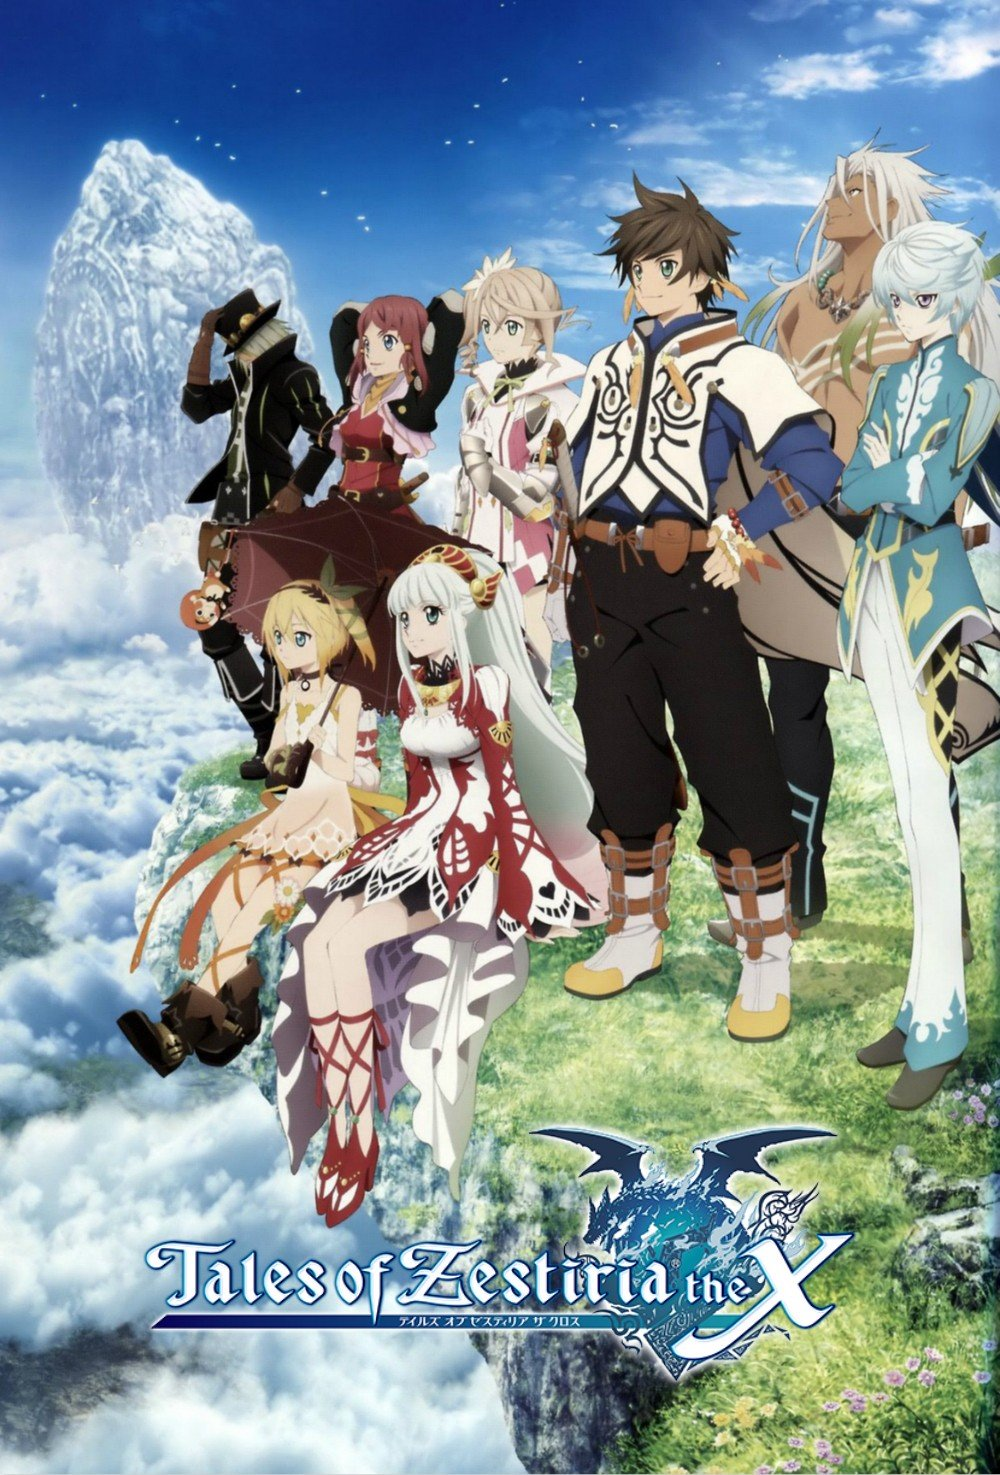 Tales of Zestiria the X 2期 情热传说 the X 第二季